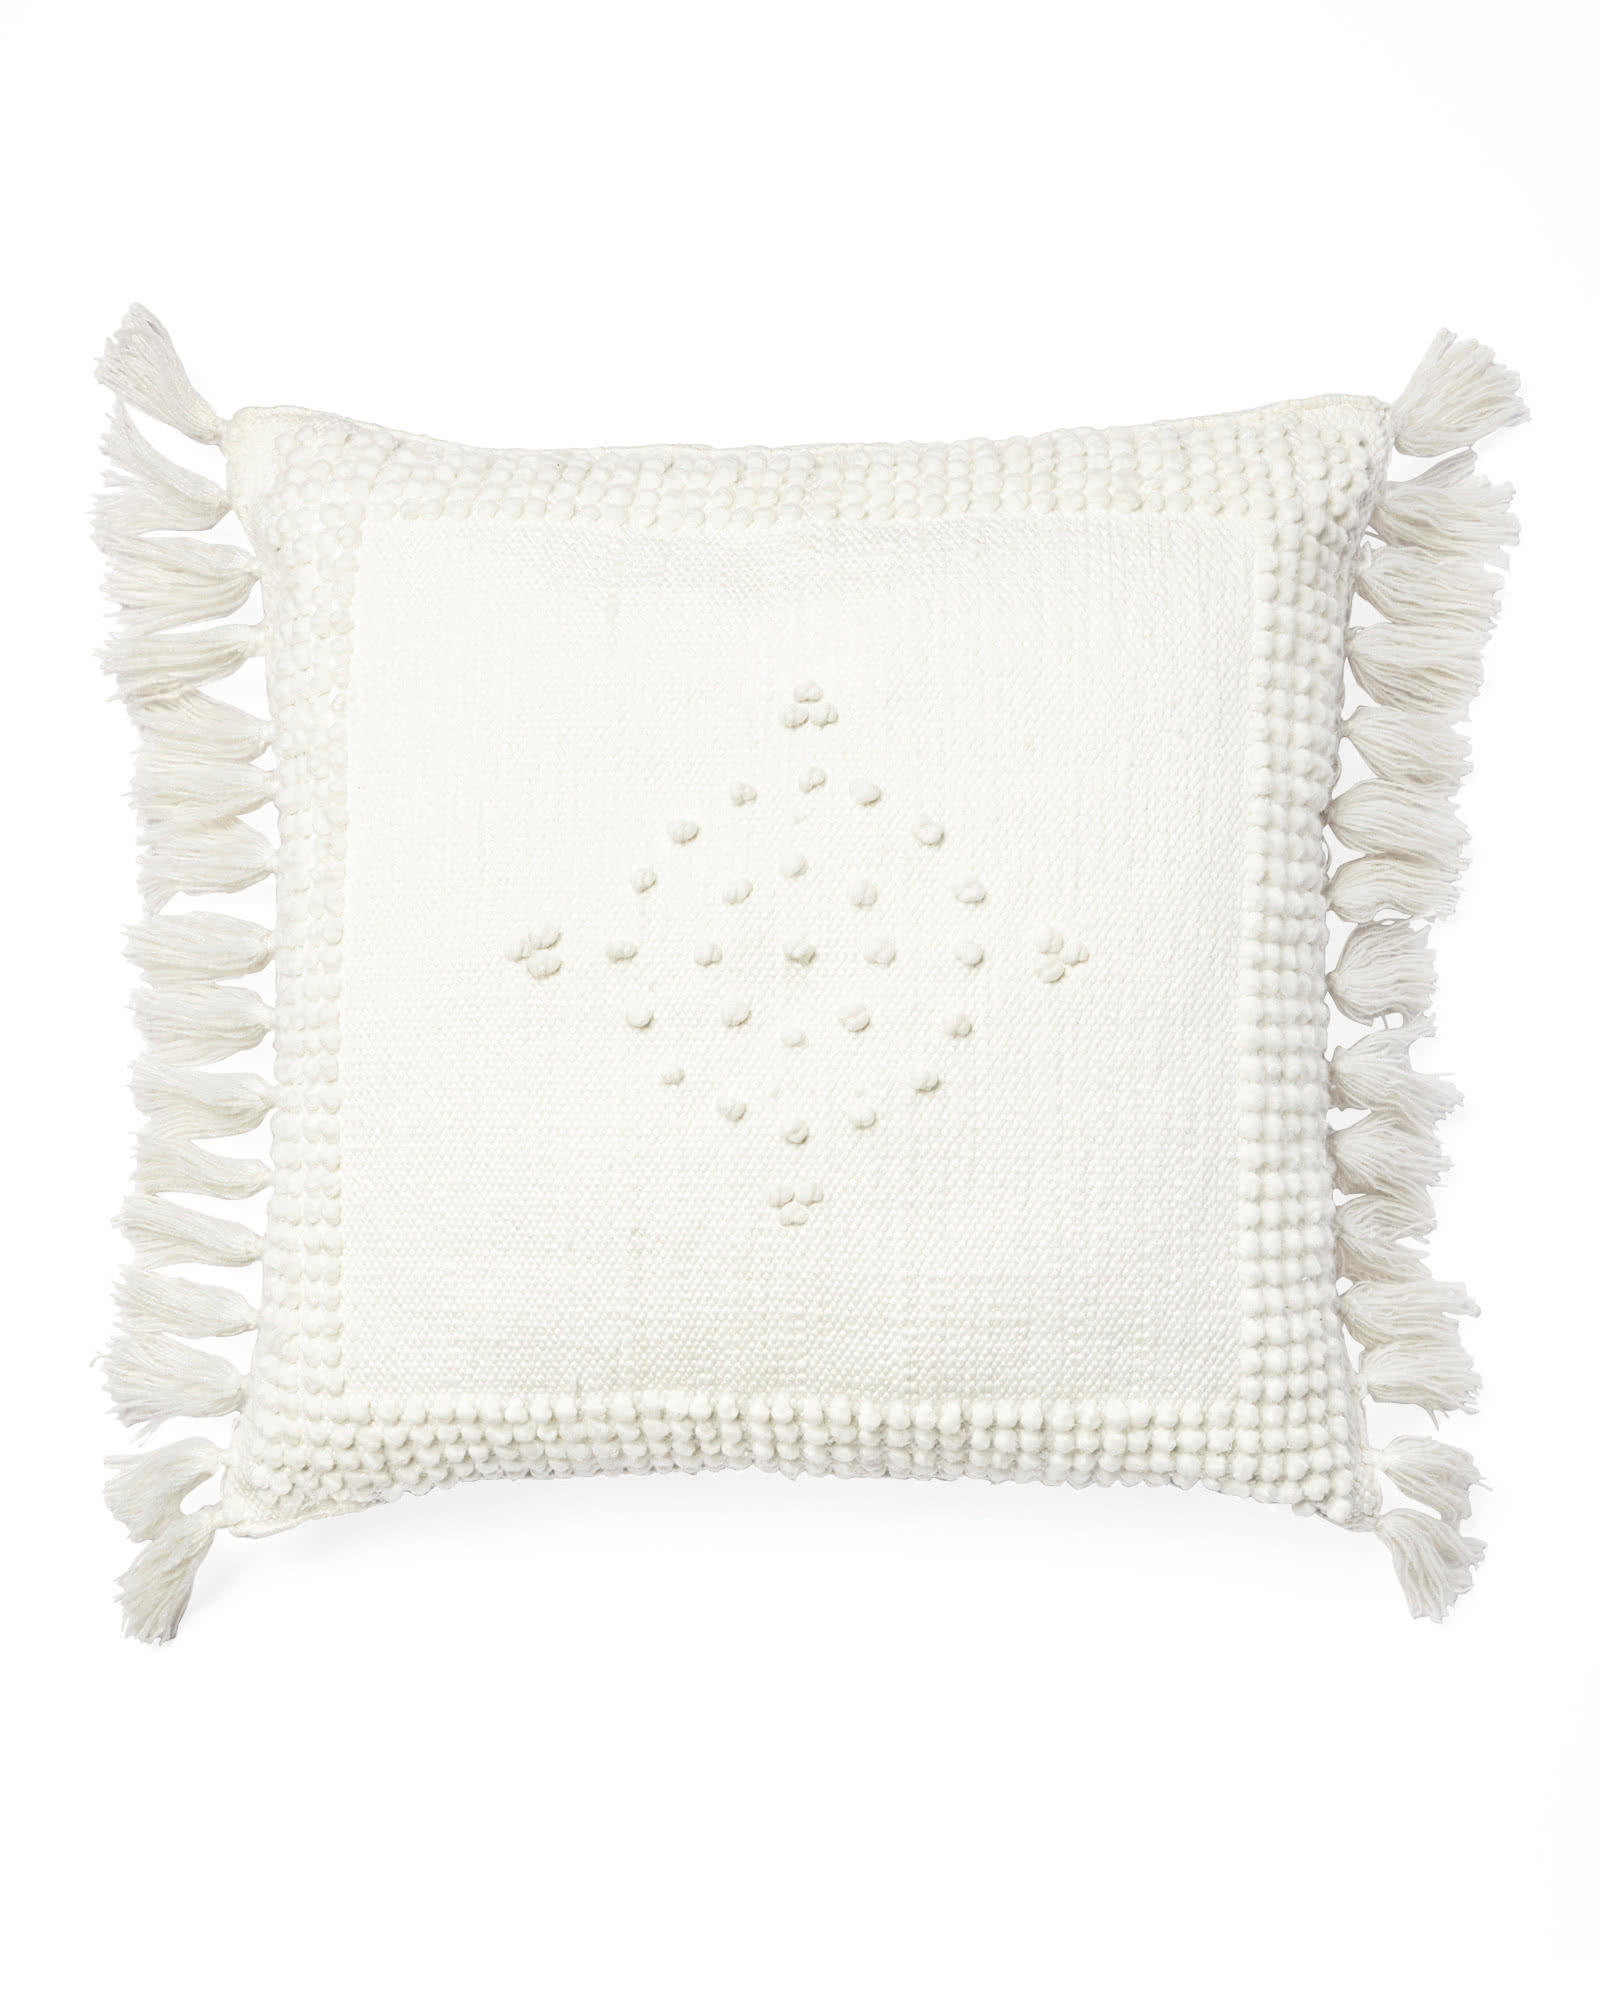 Montecito Outdoor Pillow Cover, Ivory